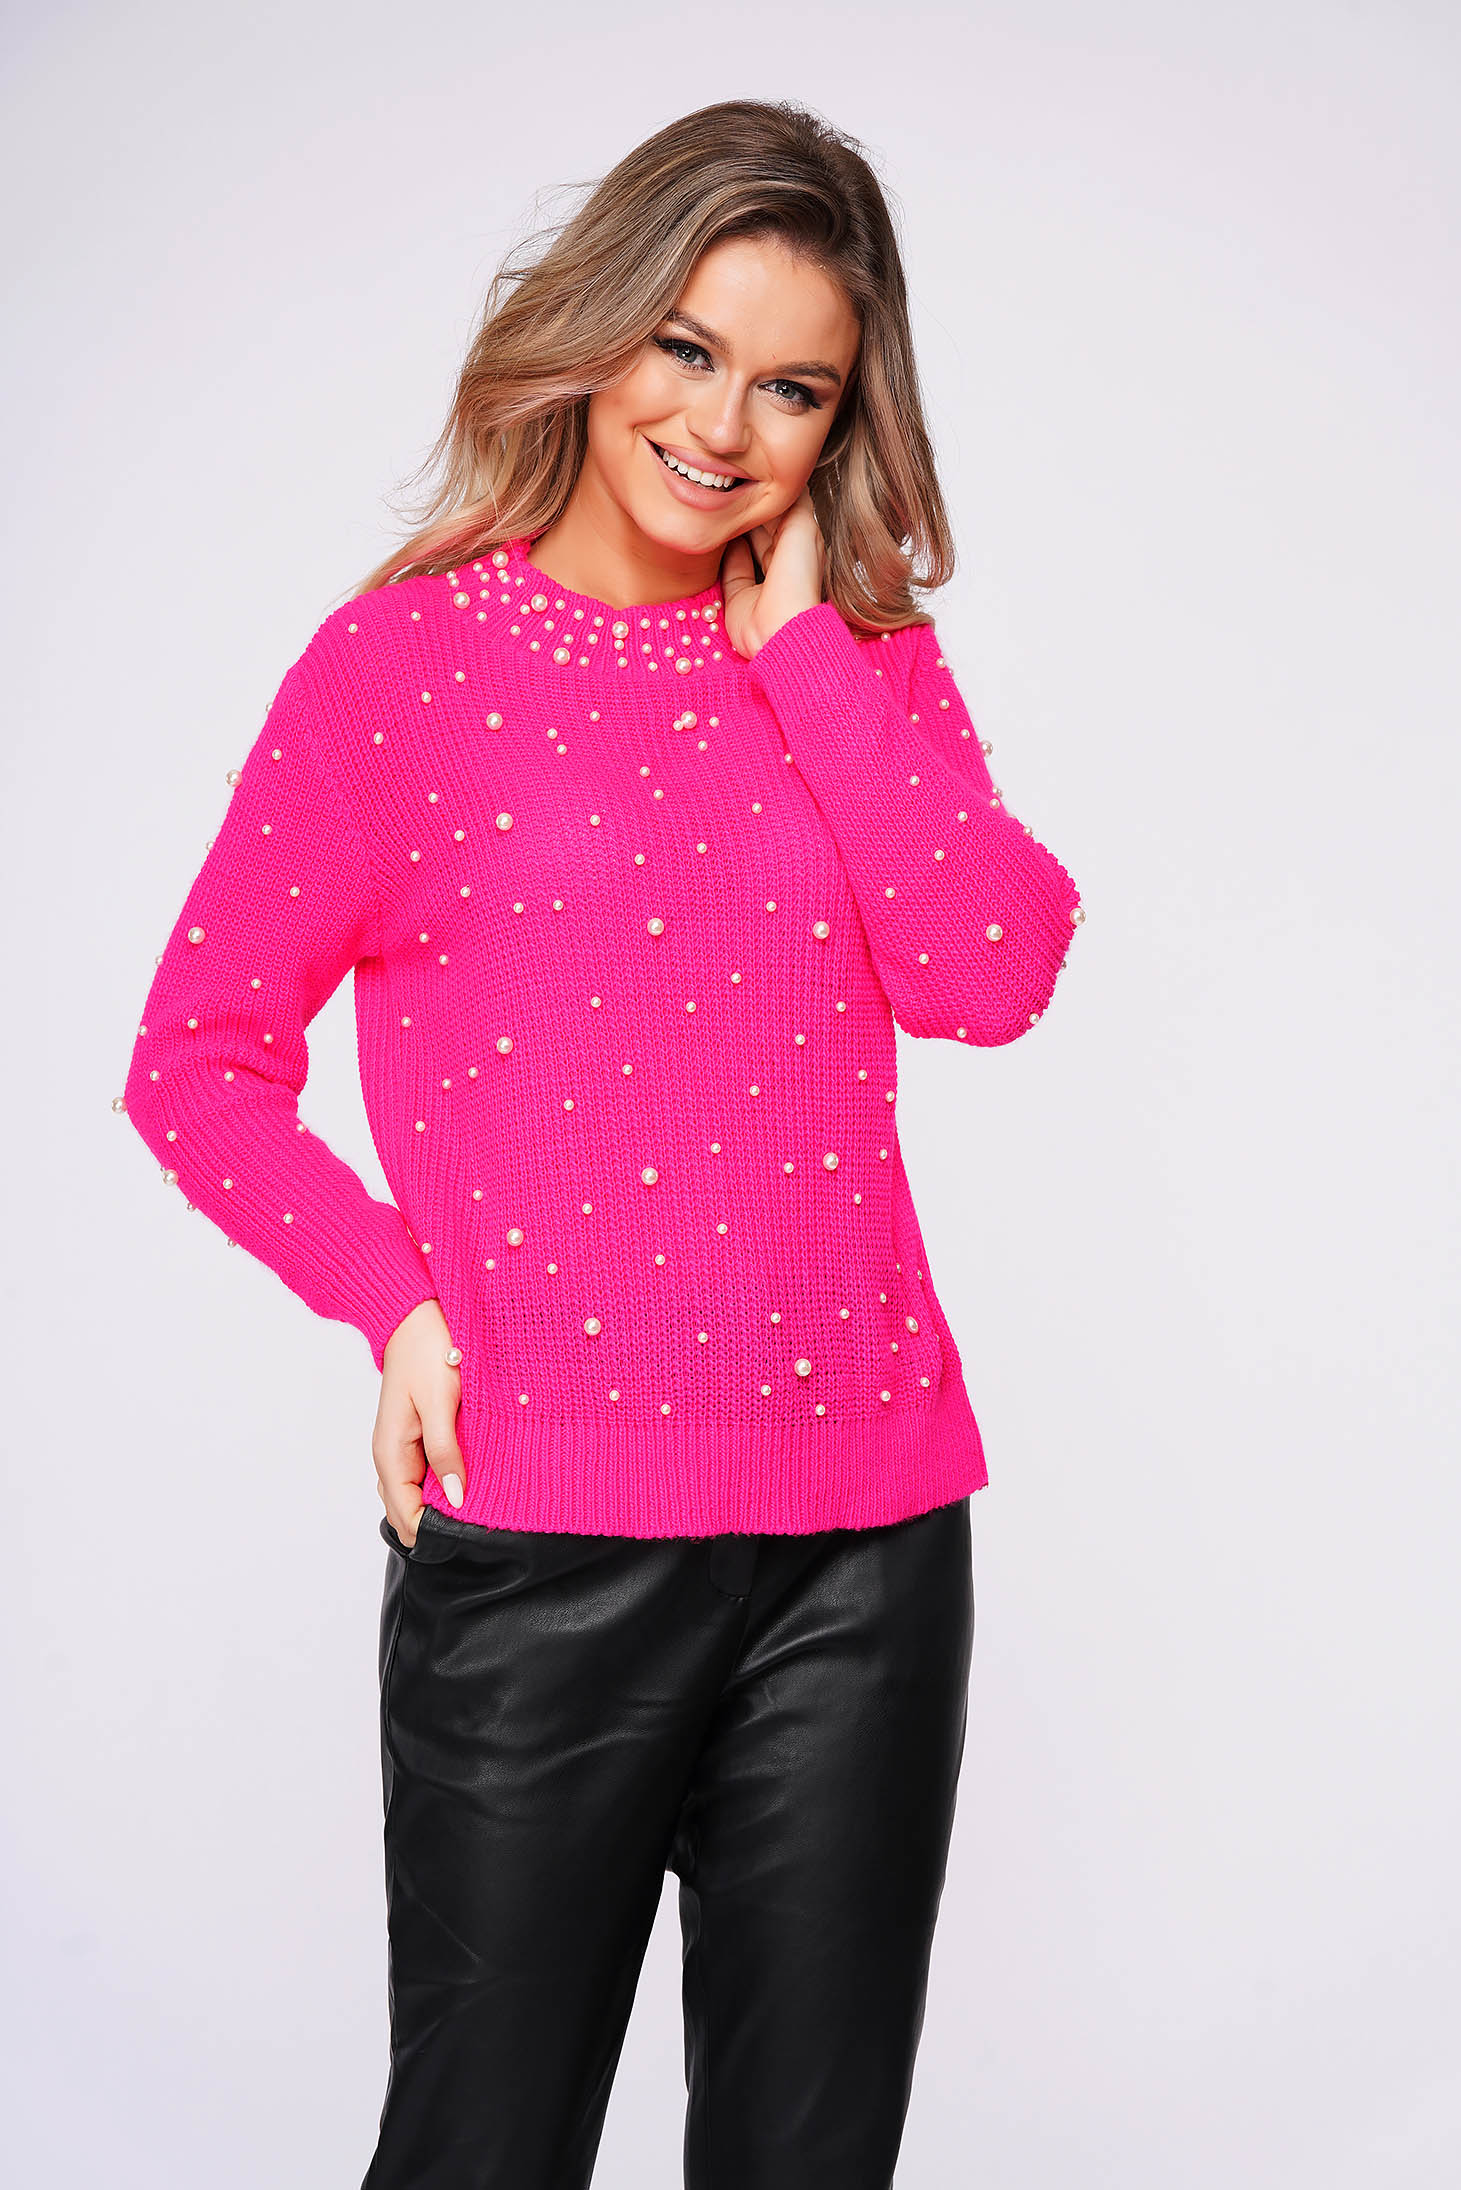 Pink sweater casual flared knitted fabric with pearls